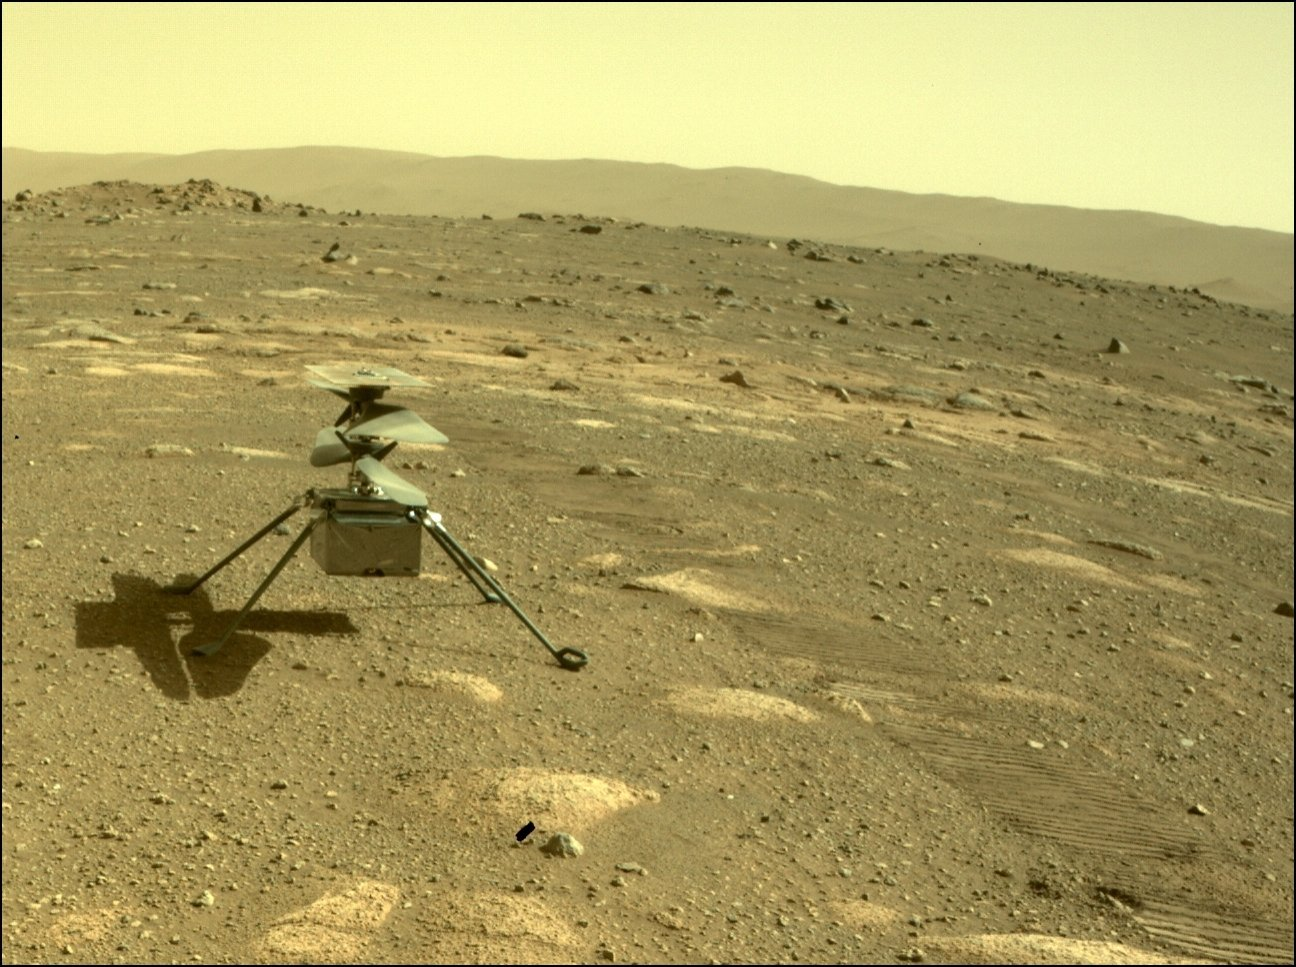 A handout photo made available by NASA shows the Ingenuity Helicopter after it was detached from NASA's Perseverance Mars rover, 04 April 2021. (EPA/NASA/JPL-Caltech HANDOUT)